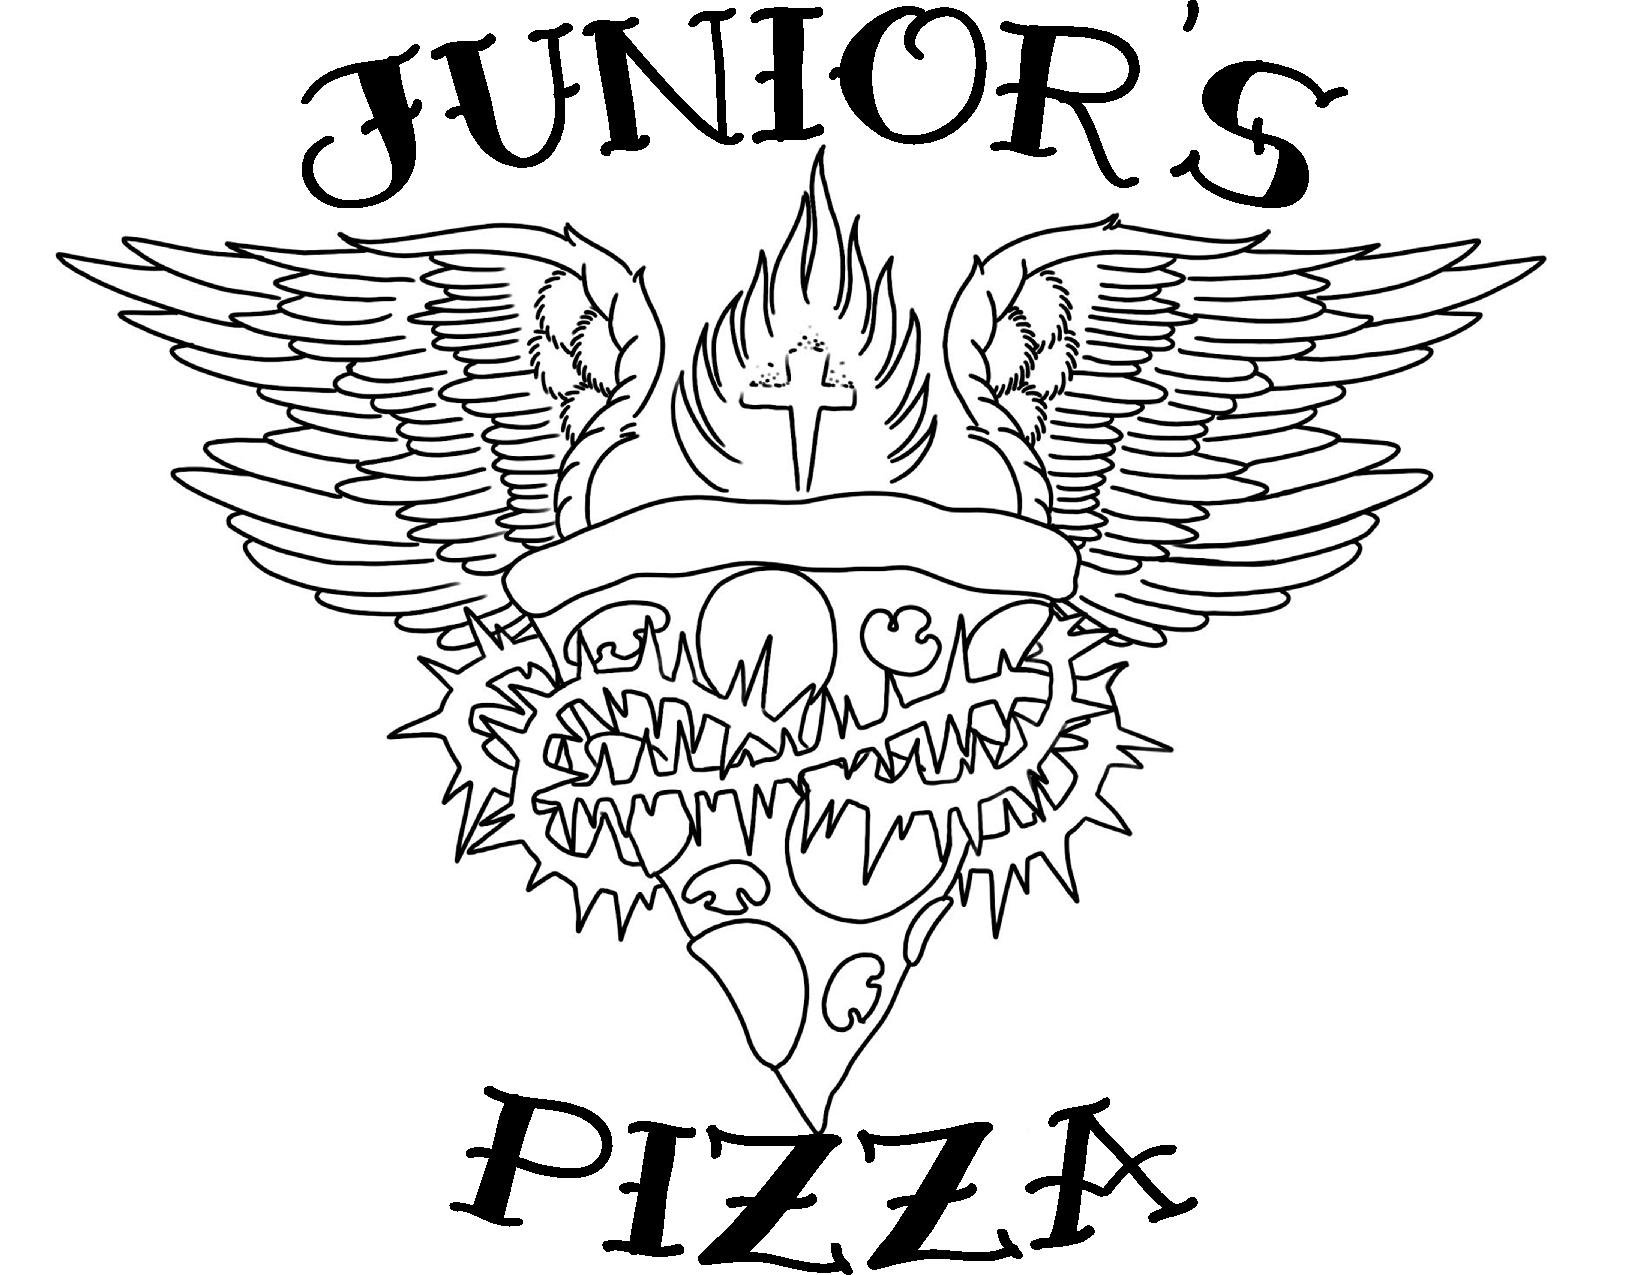 Juniors Pizza